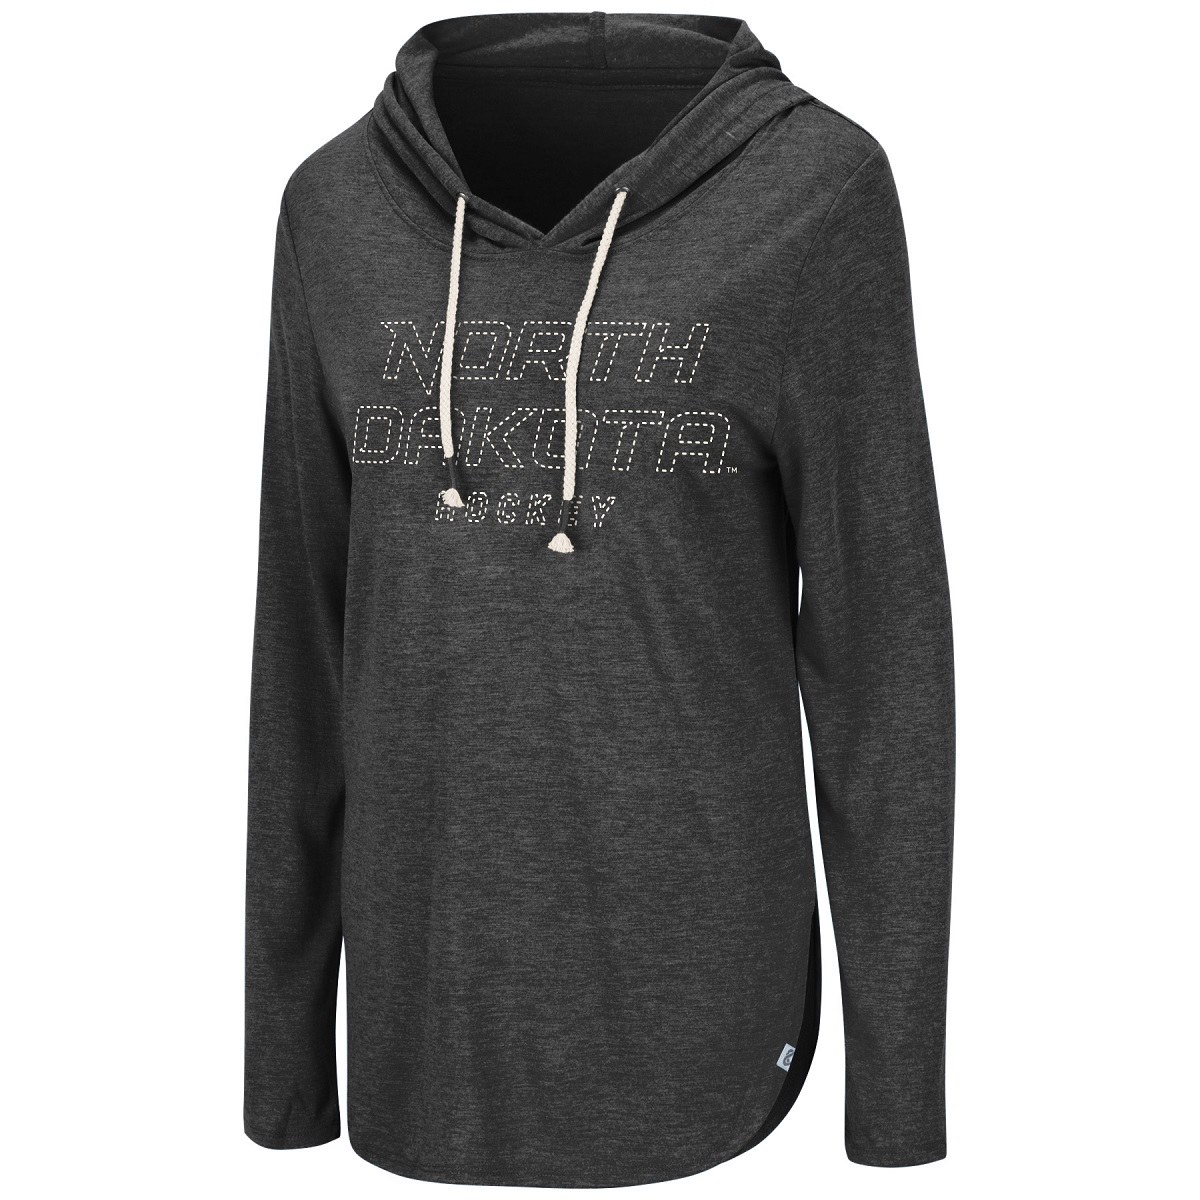 UNIVERSITY OF NORTH DAKOTA HOCKEY CALLAMEZZO HOODED TEE